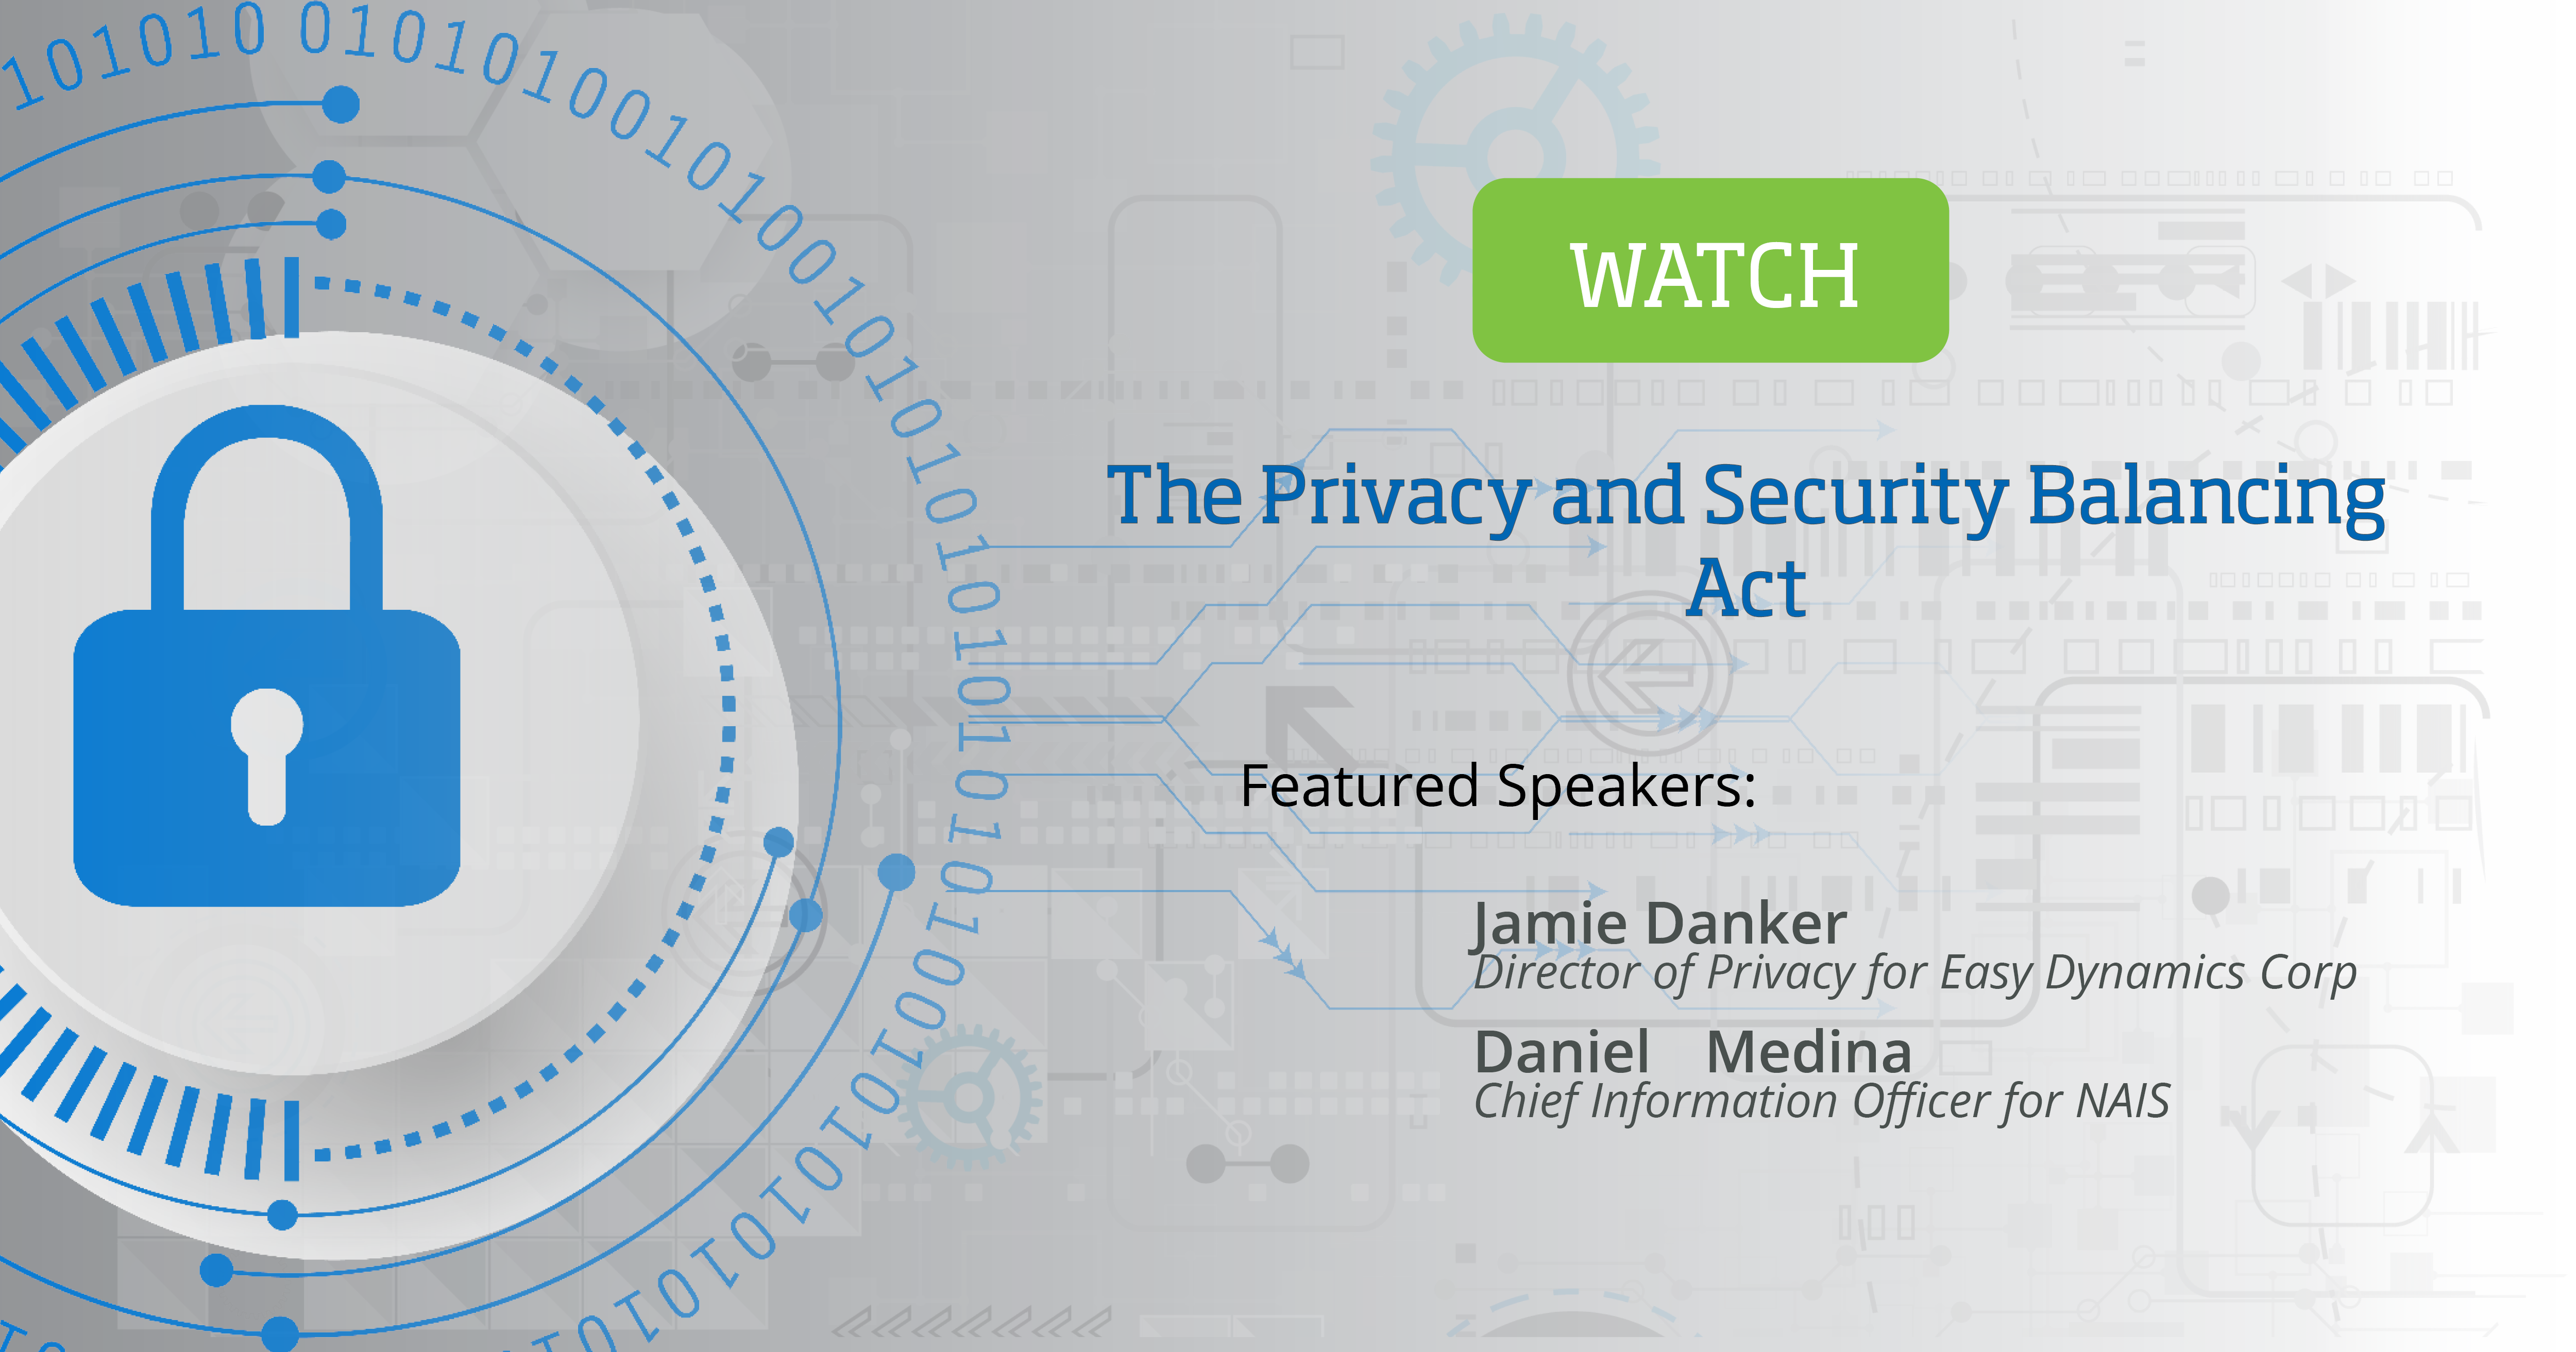 The Privacy and Security Balancing Act-20200924 1901-1